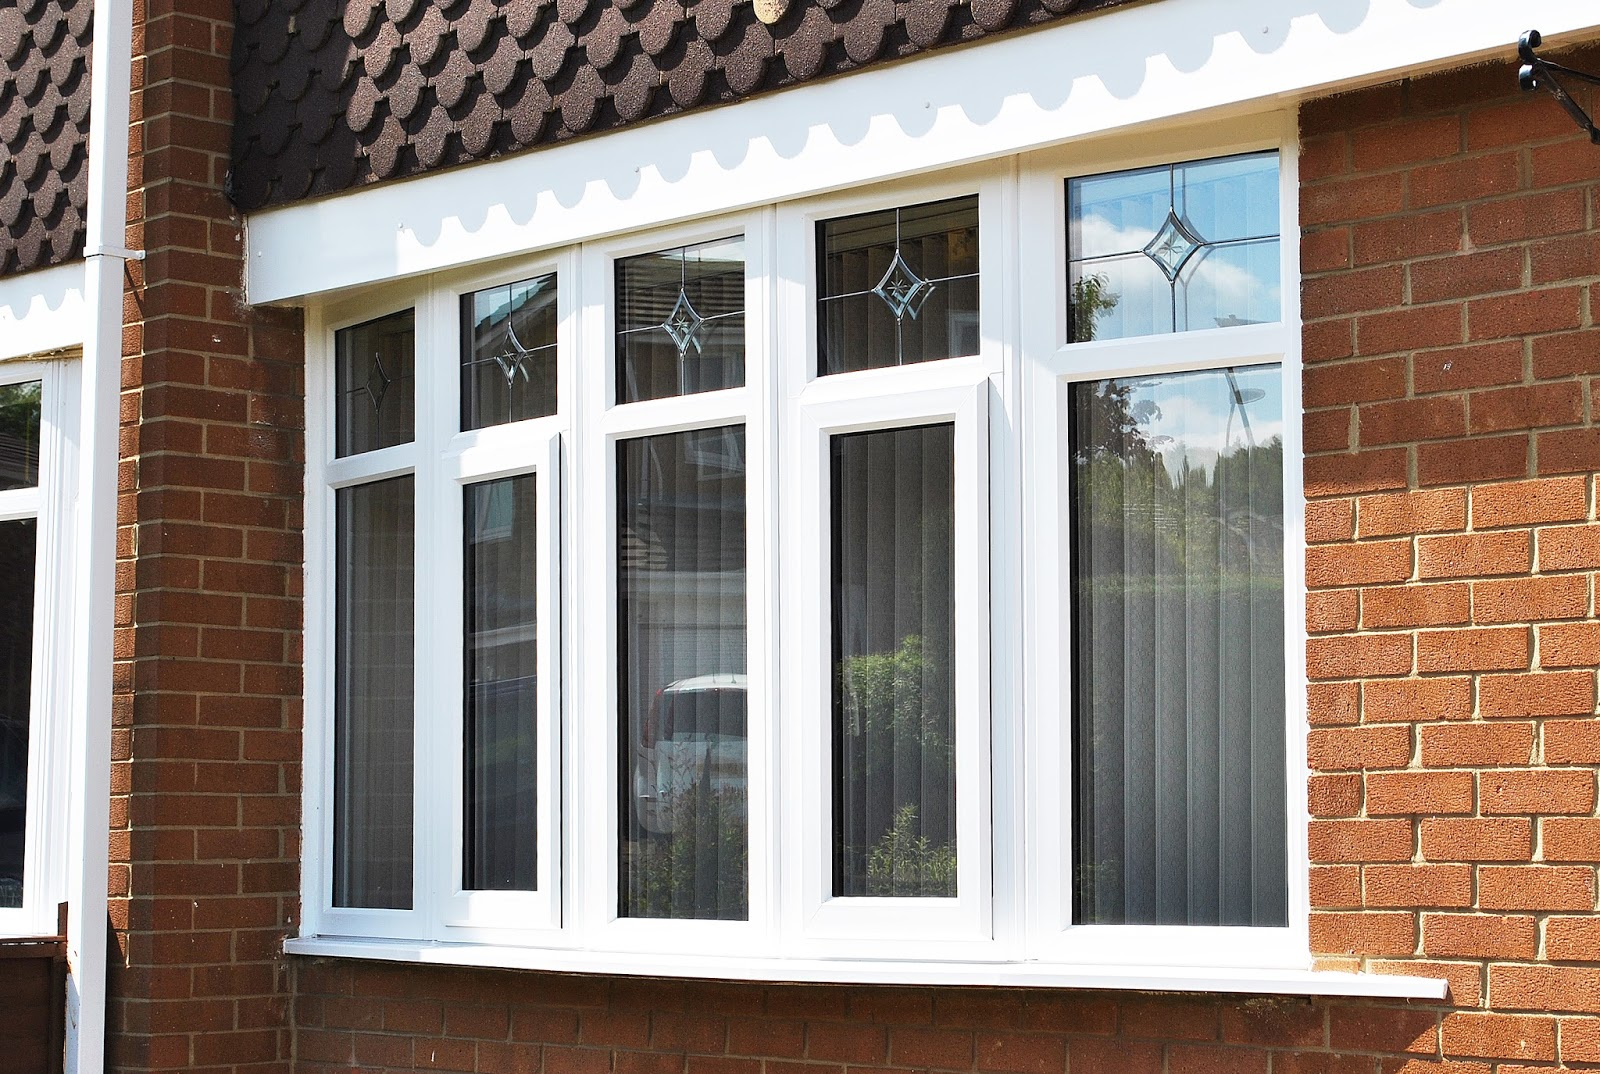 Beautiful upvc rehau lincoln door and windows with sparkle glass design in side panels and top Upvc window designs for homes